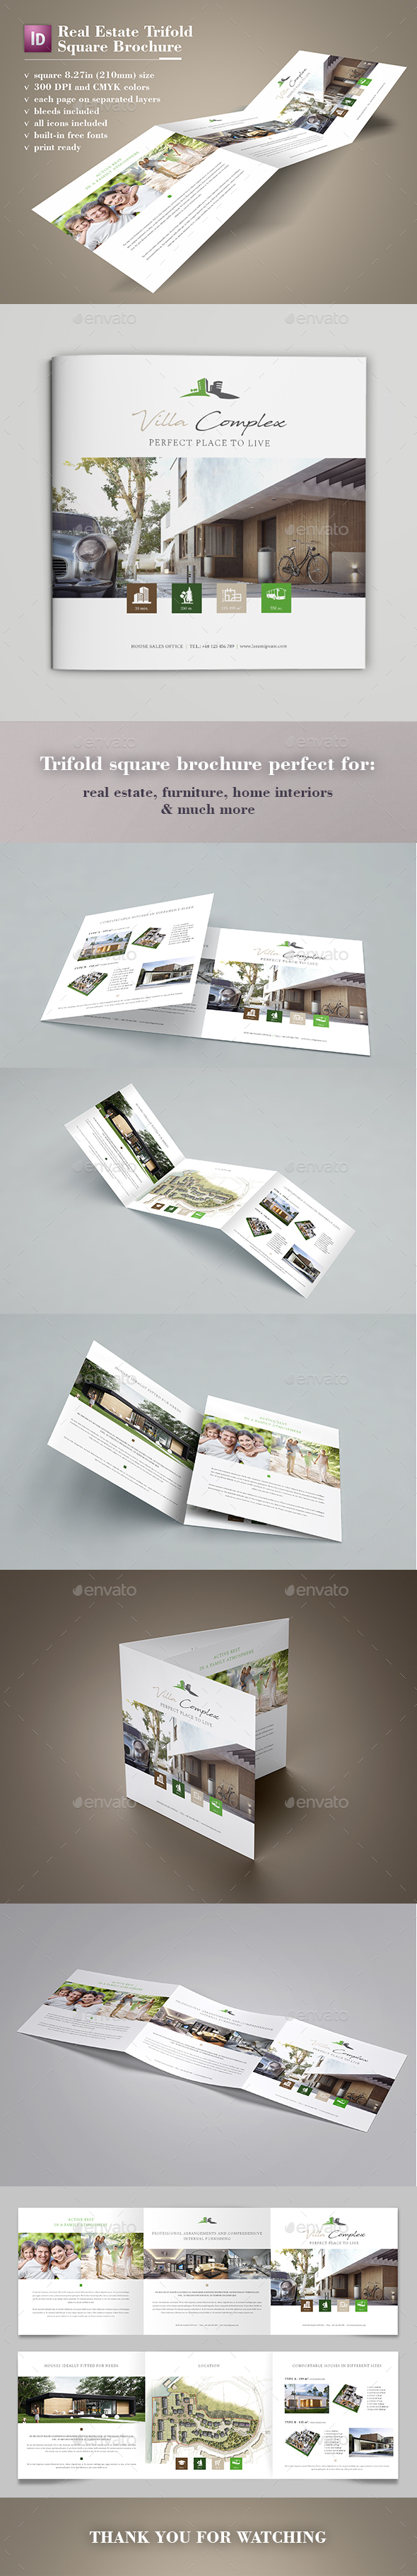 Real Estate Square Trifold Brochure - Catalogs Brochures